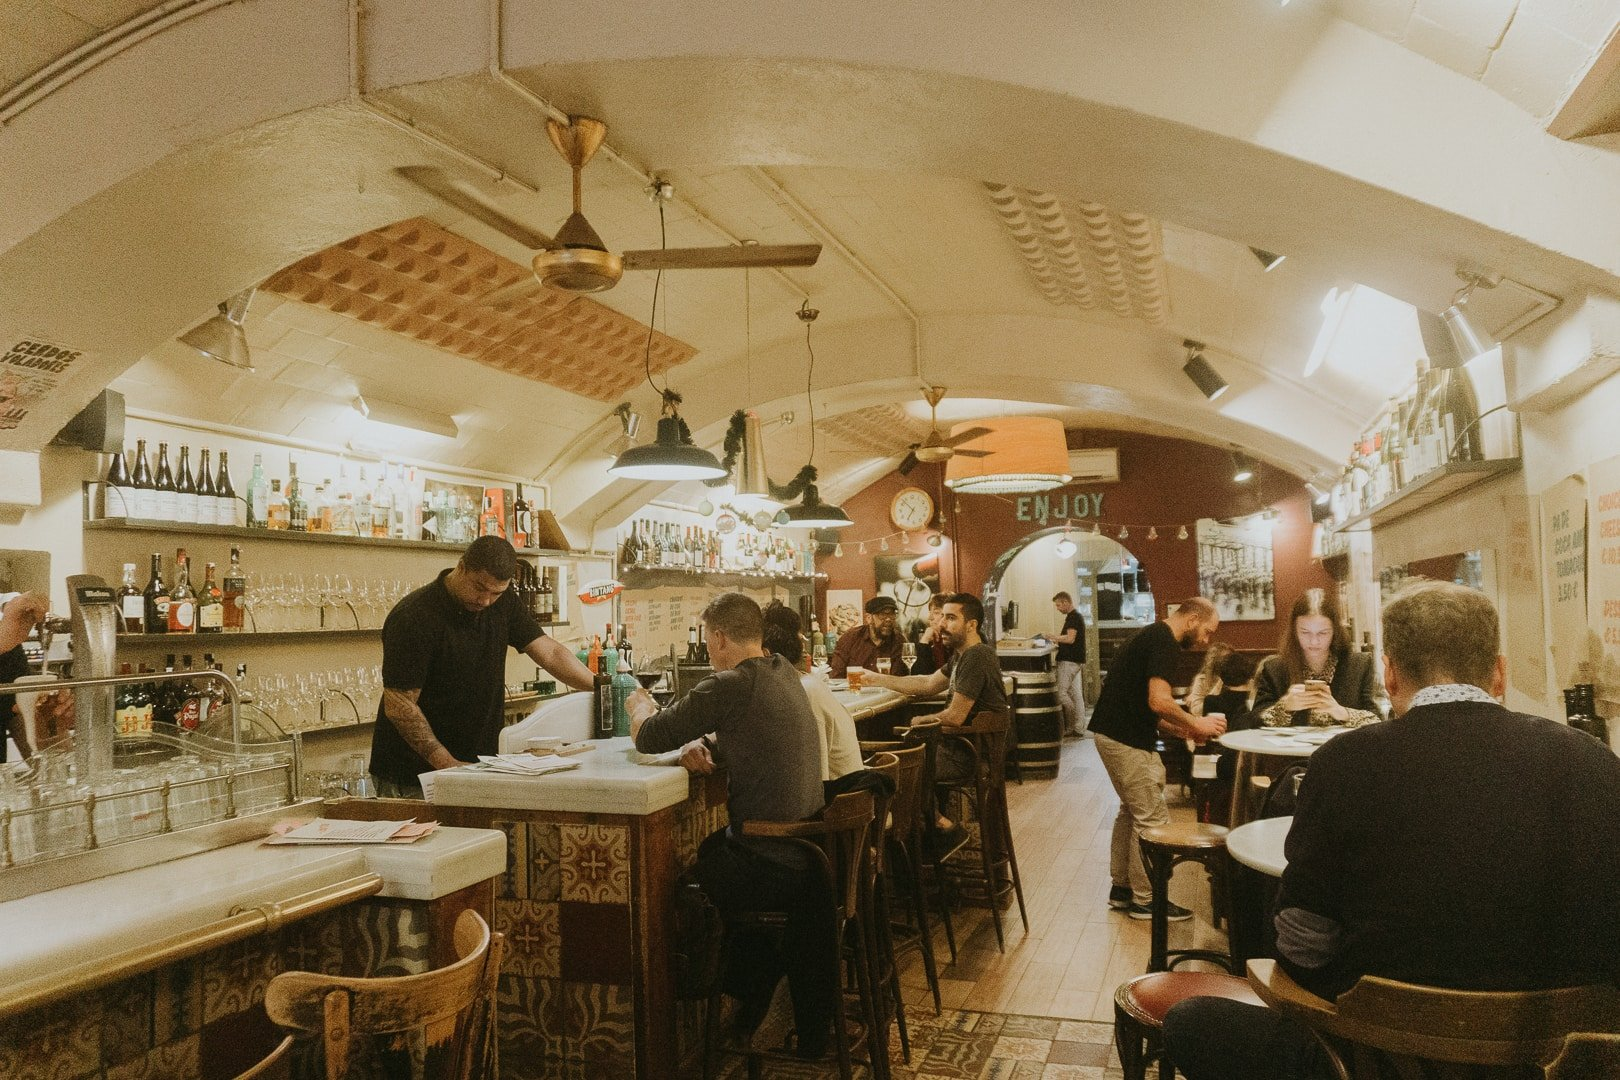 bar del pla, a must eat at restaurant in Barcelona, Spain